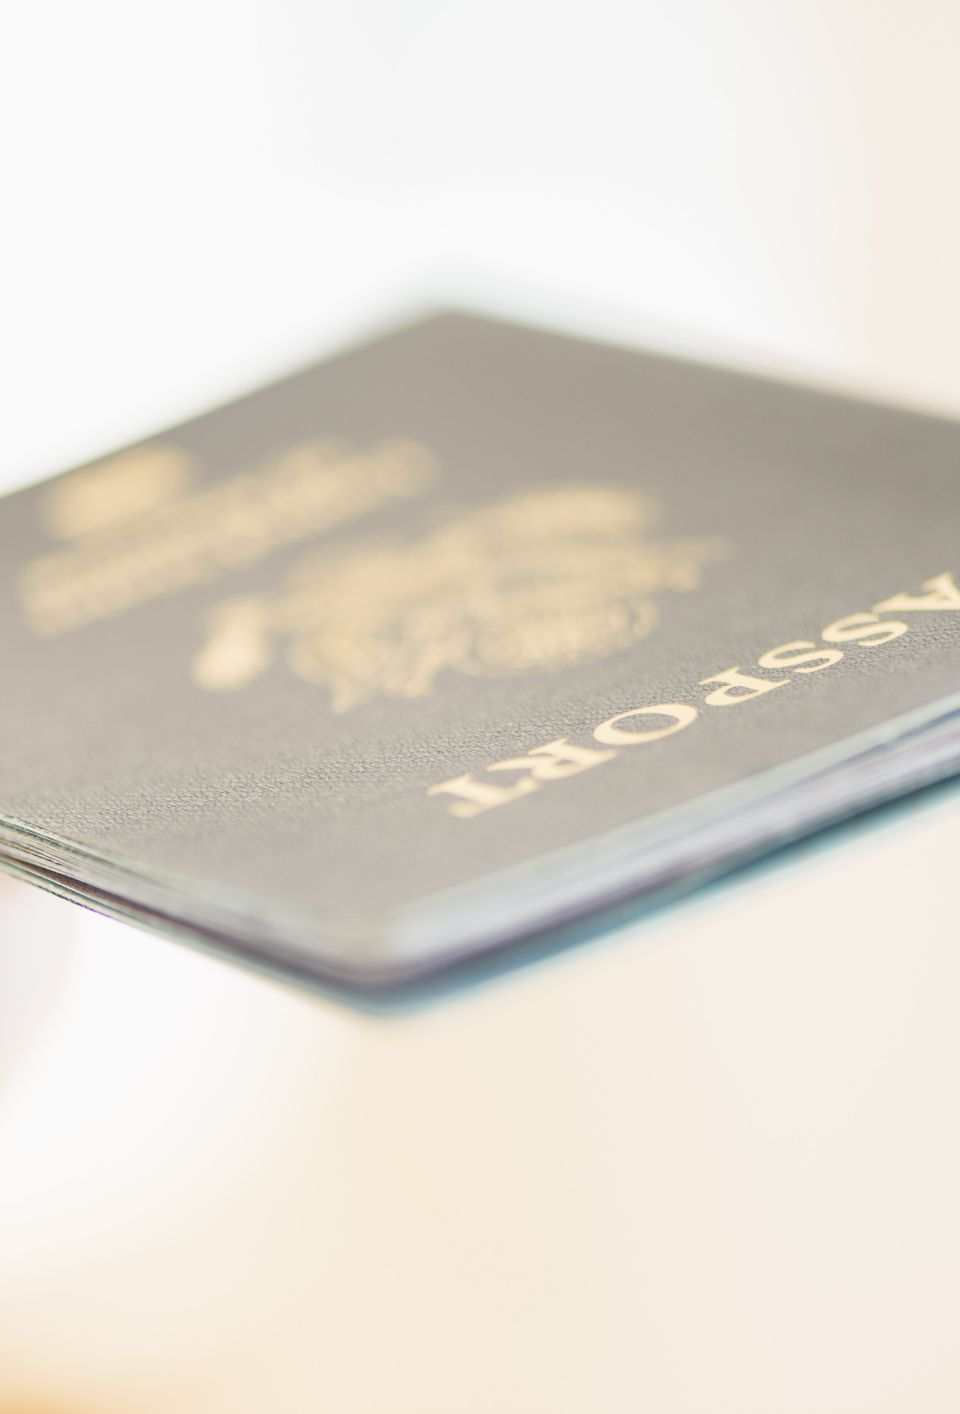 Close up of woman's hand holding passport